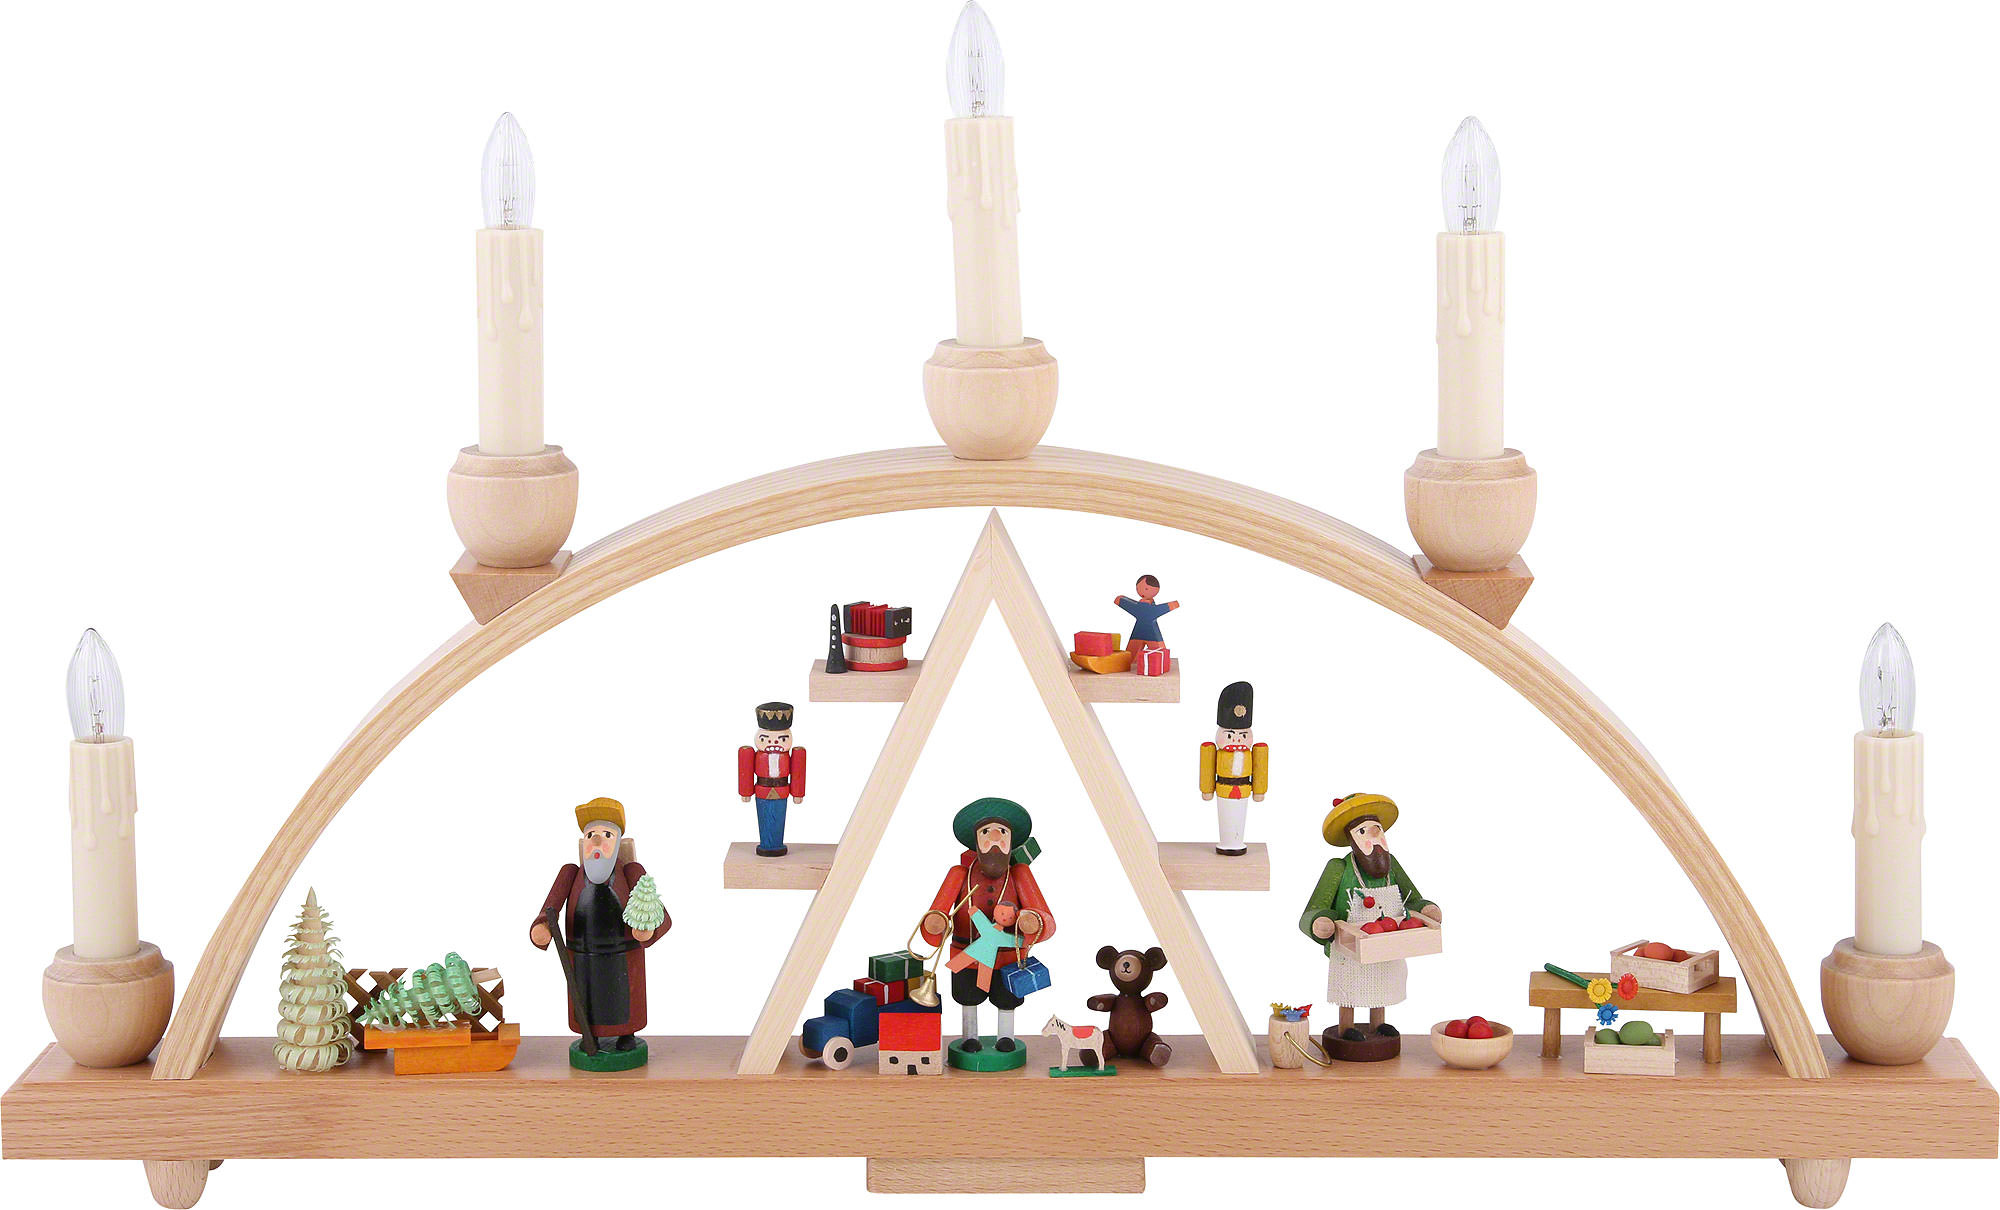 Candle arch christmas at seiffen 19 11in 48 28 cm for Arch candle christmas decoration